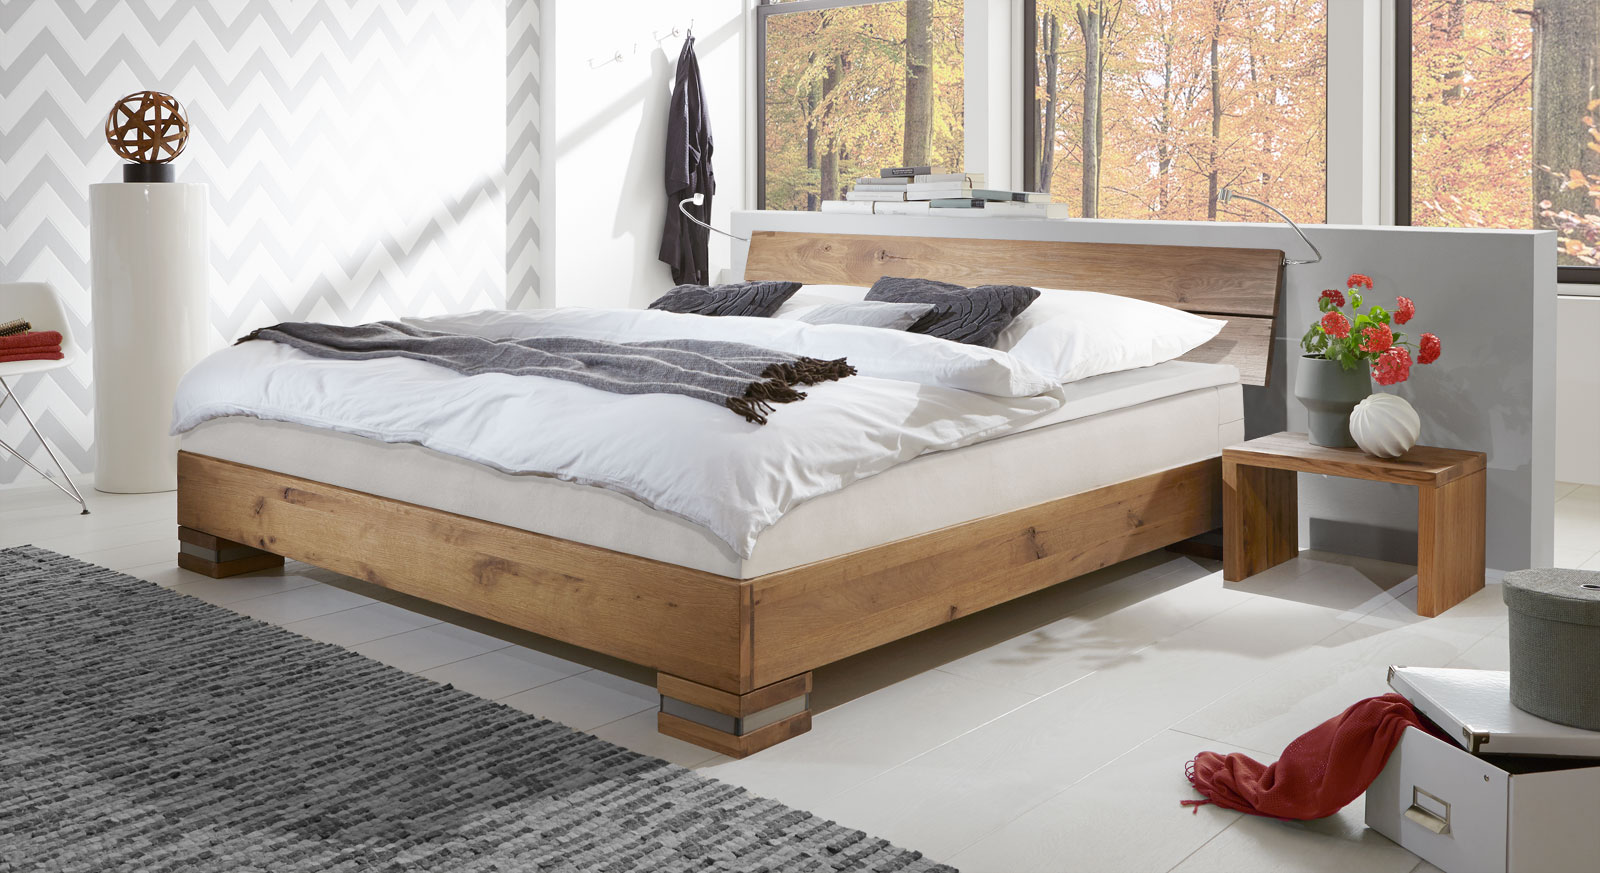 boxspringbett mexiana aus massivholz wildeiche mit einlegesystem. Black Bedroom Furniture Sets. Home Design Ideas